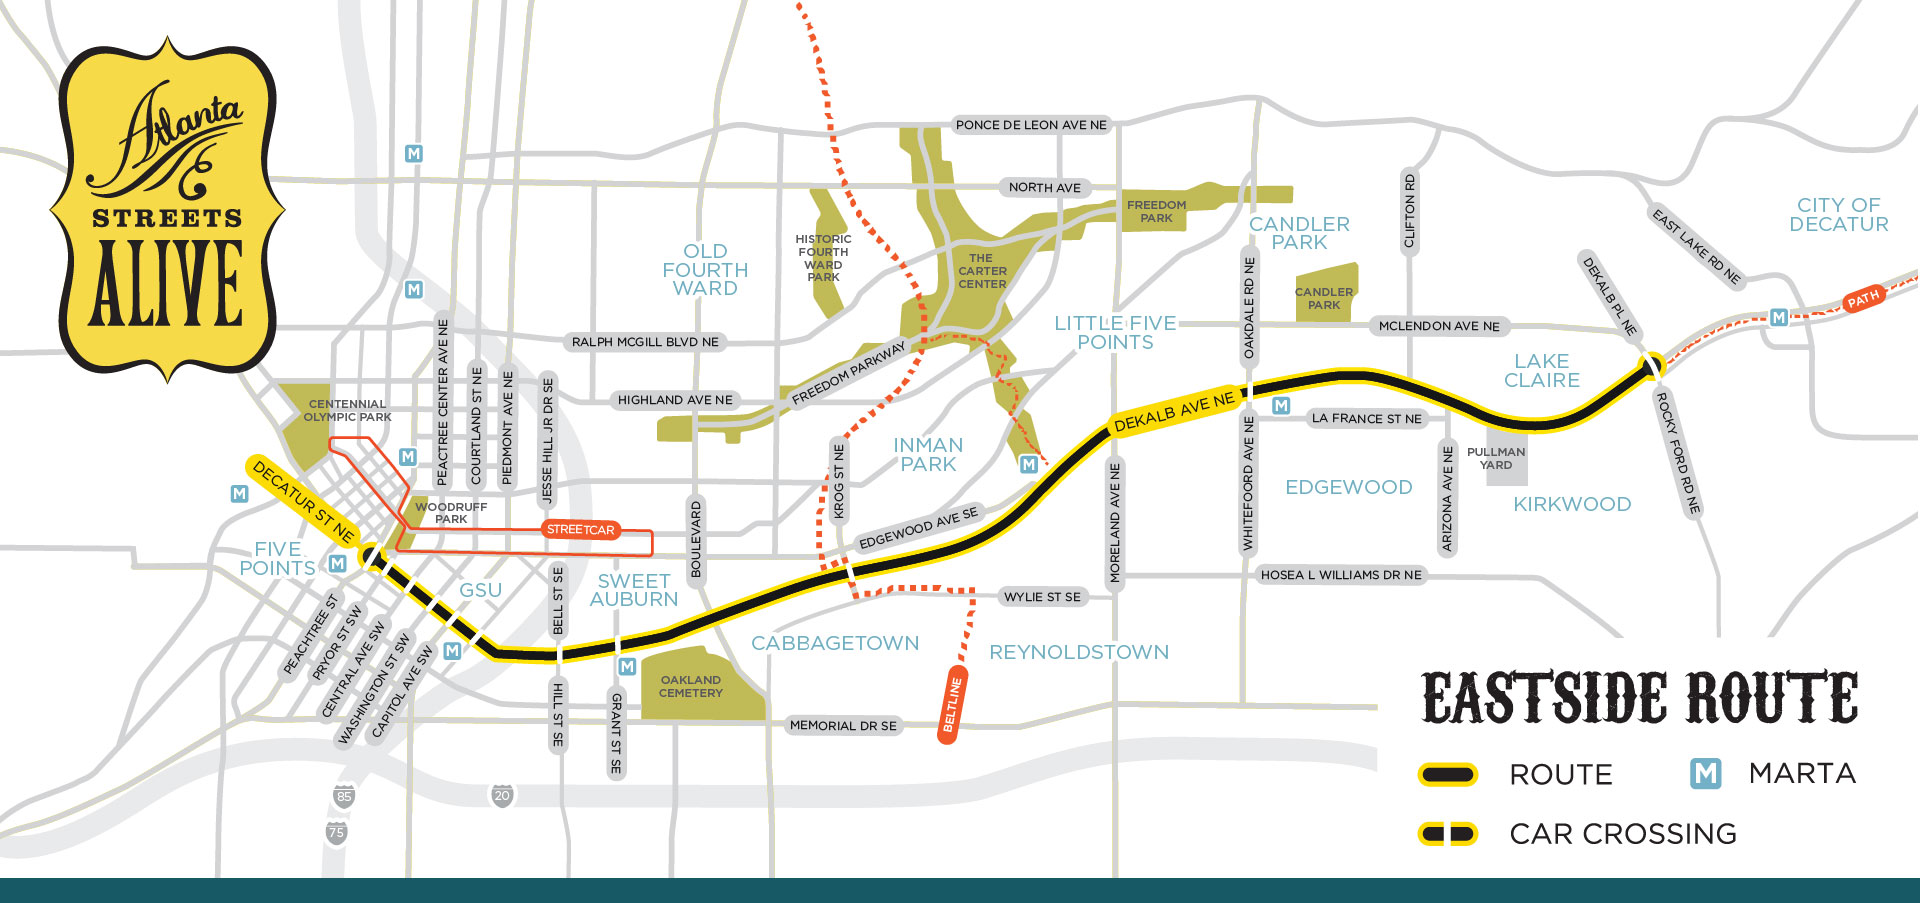 The Beltline Atlanta Map.Eastside Route April 8 Atlantastreetsalive Com